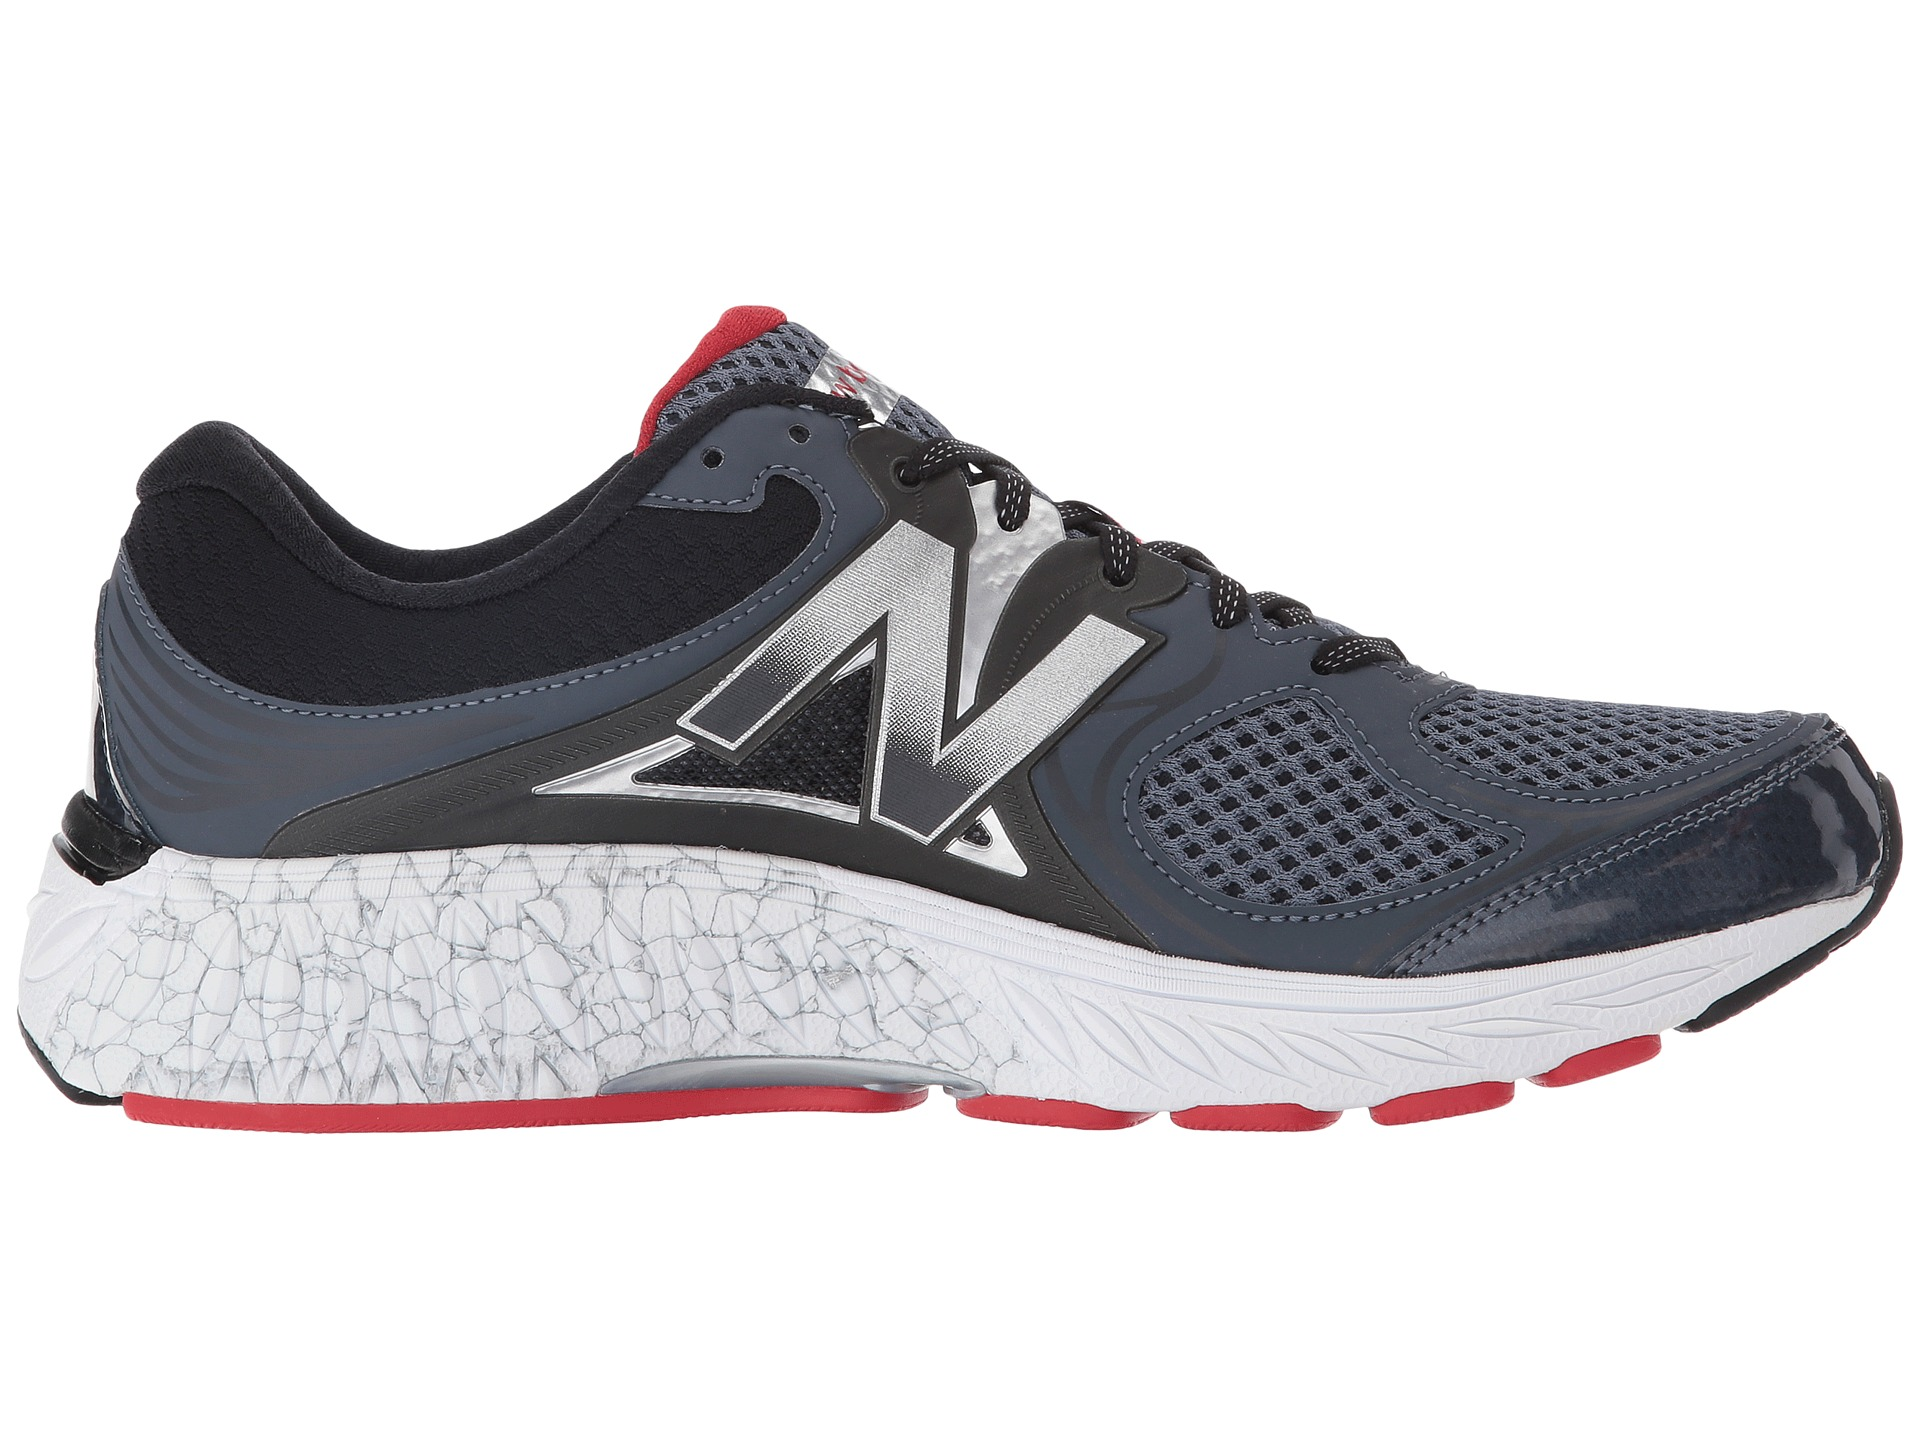 Do New Balance Shoes Run Small Or Big